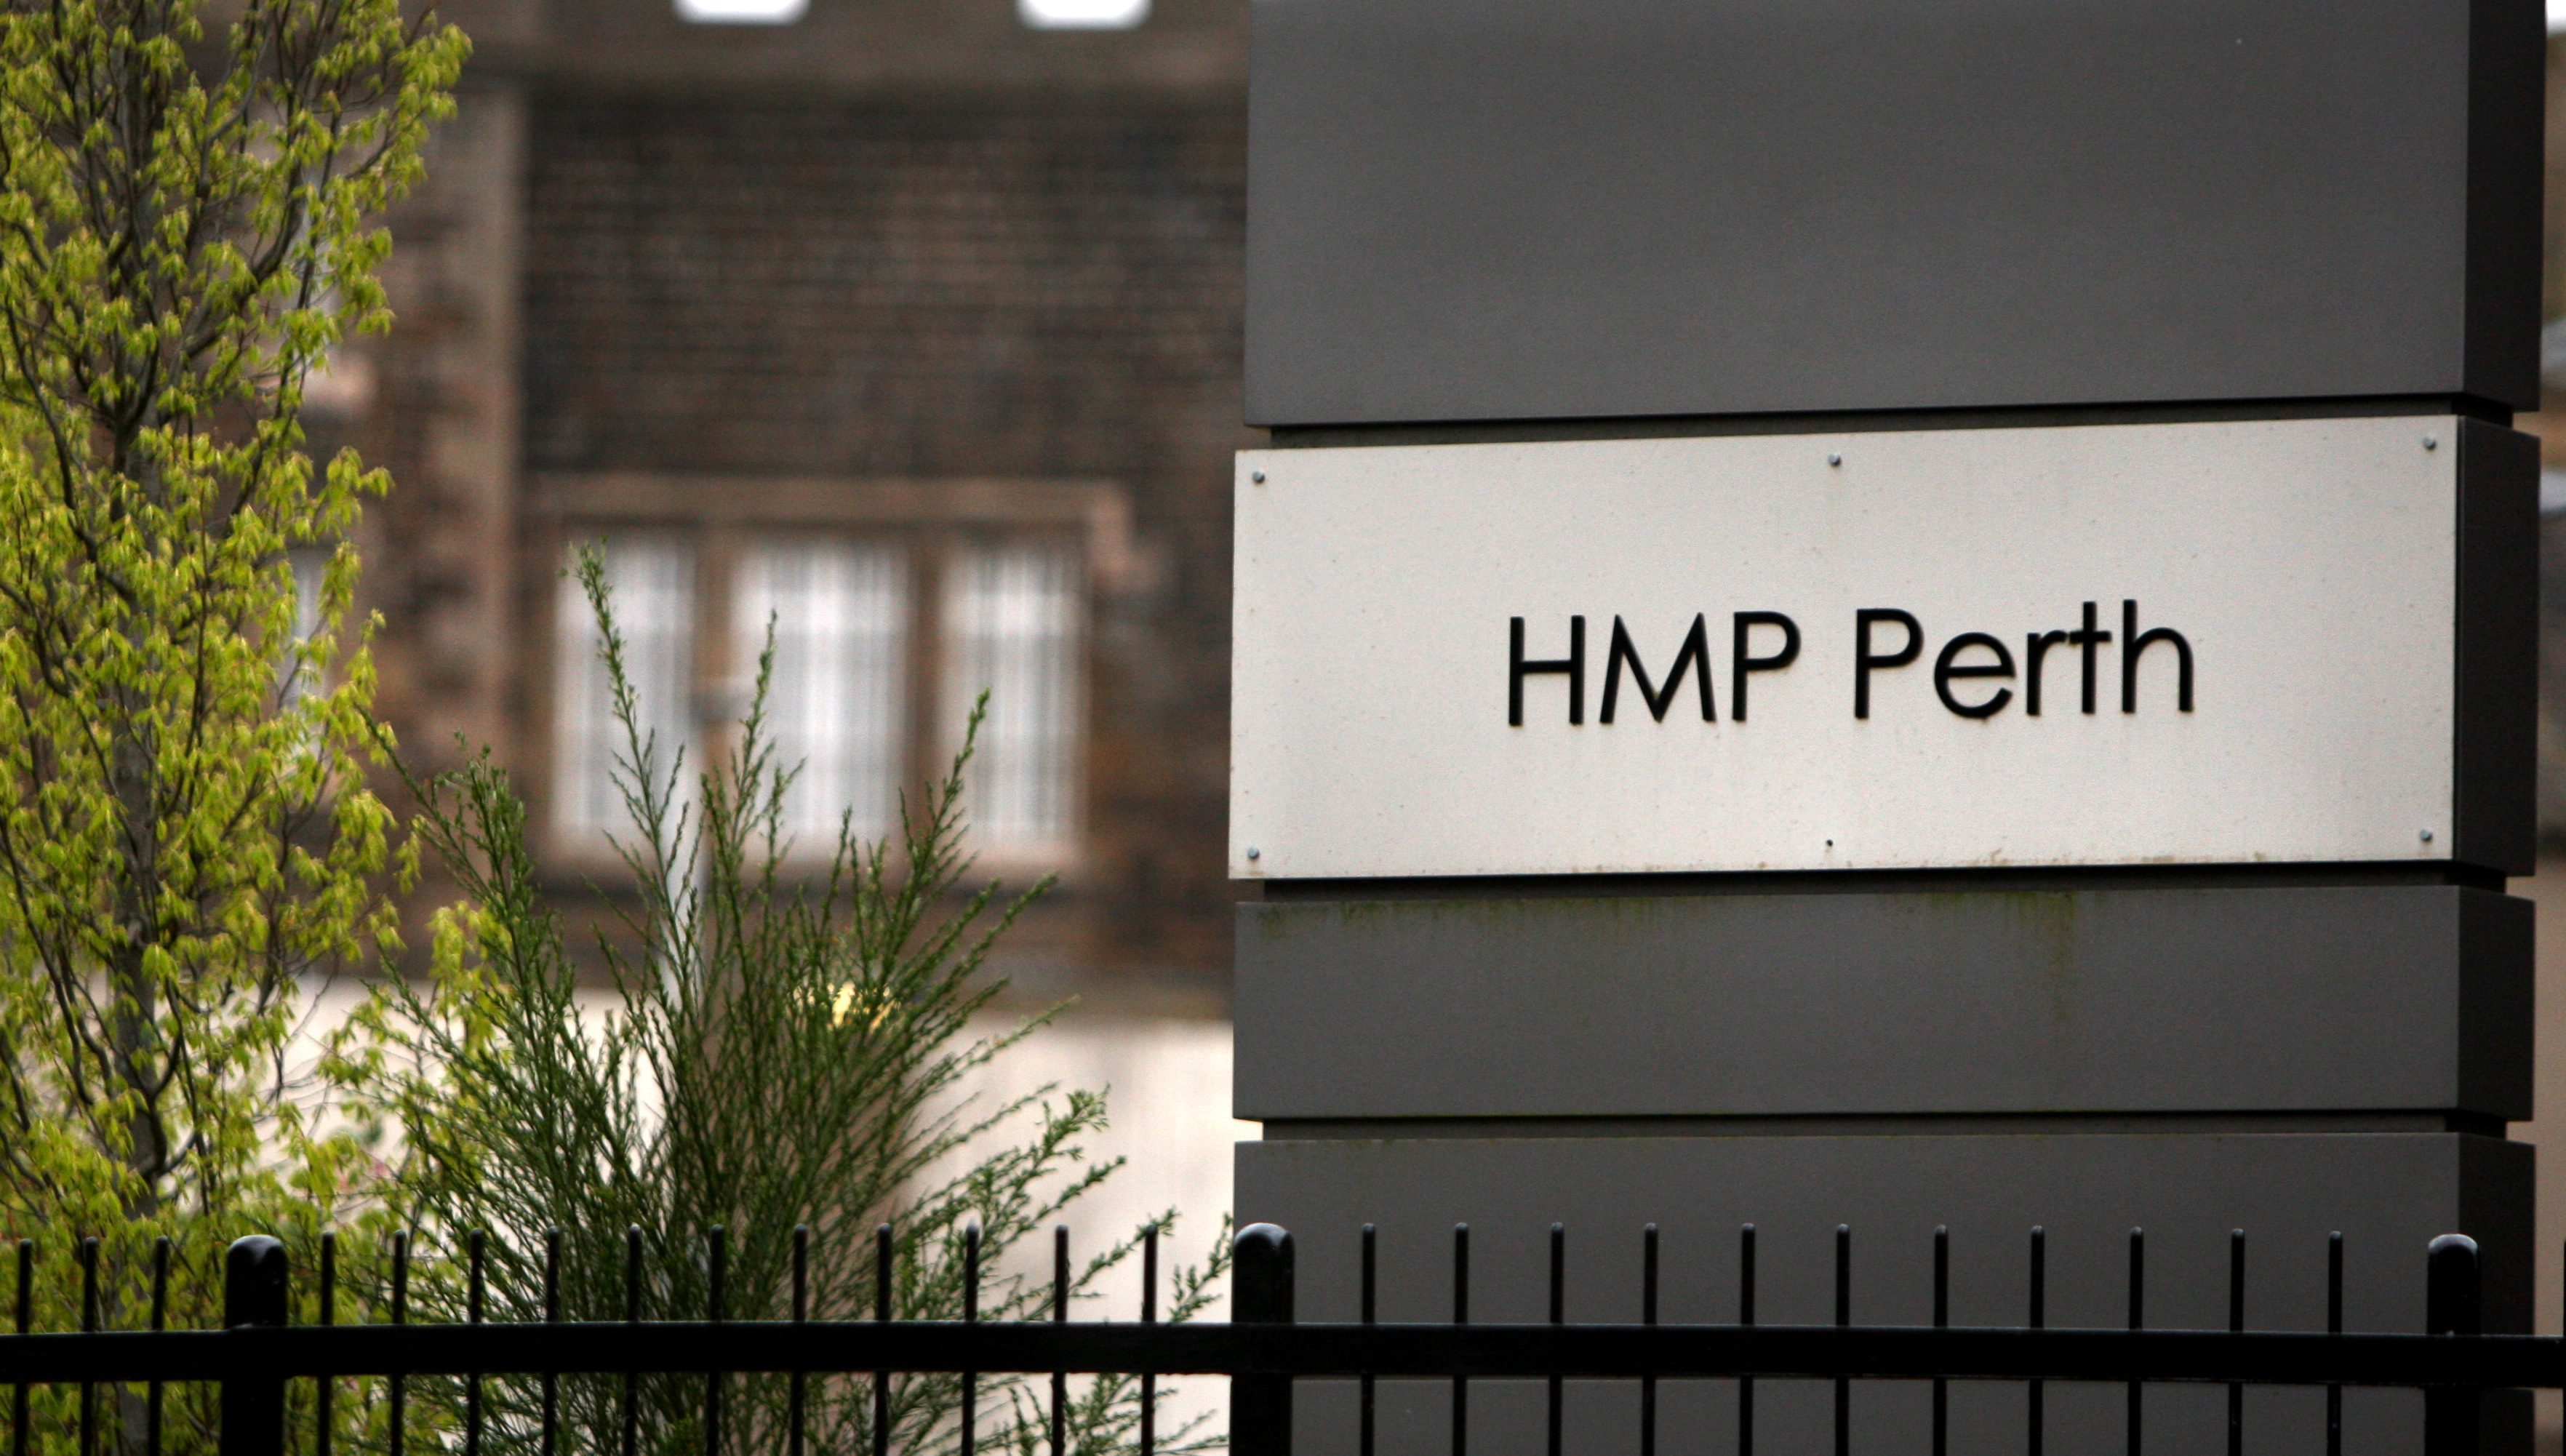 Sutton managed to continue running his drugs empire from HMP Perth and two other prisons.